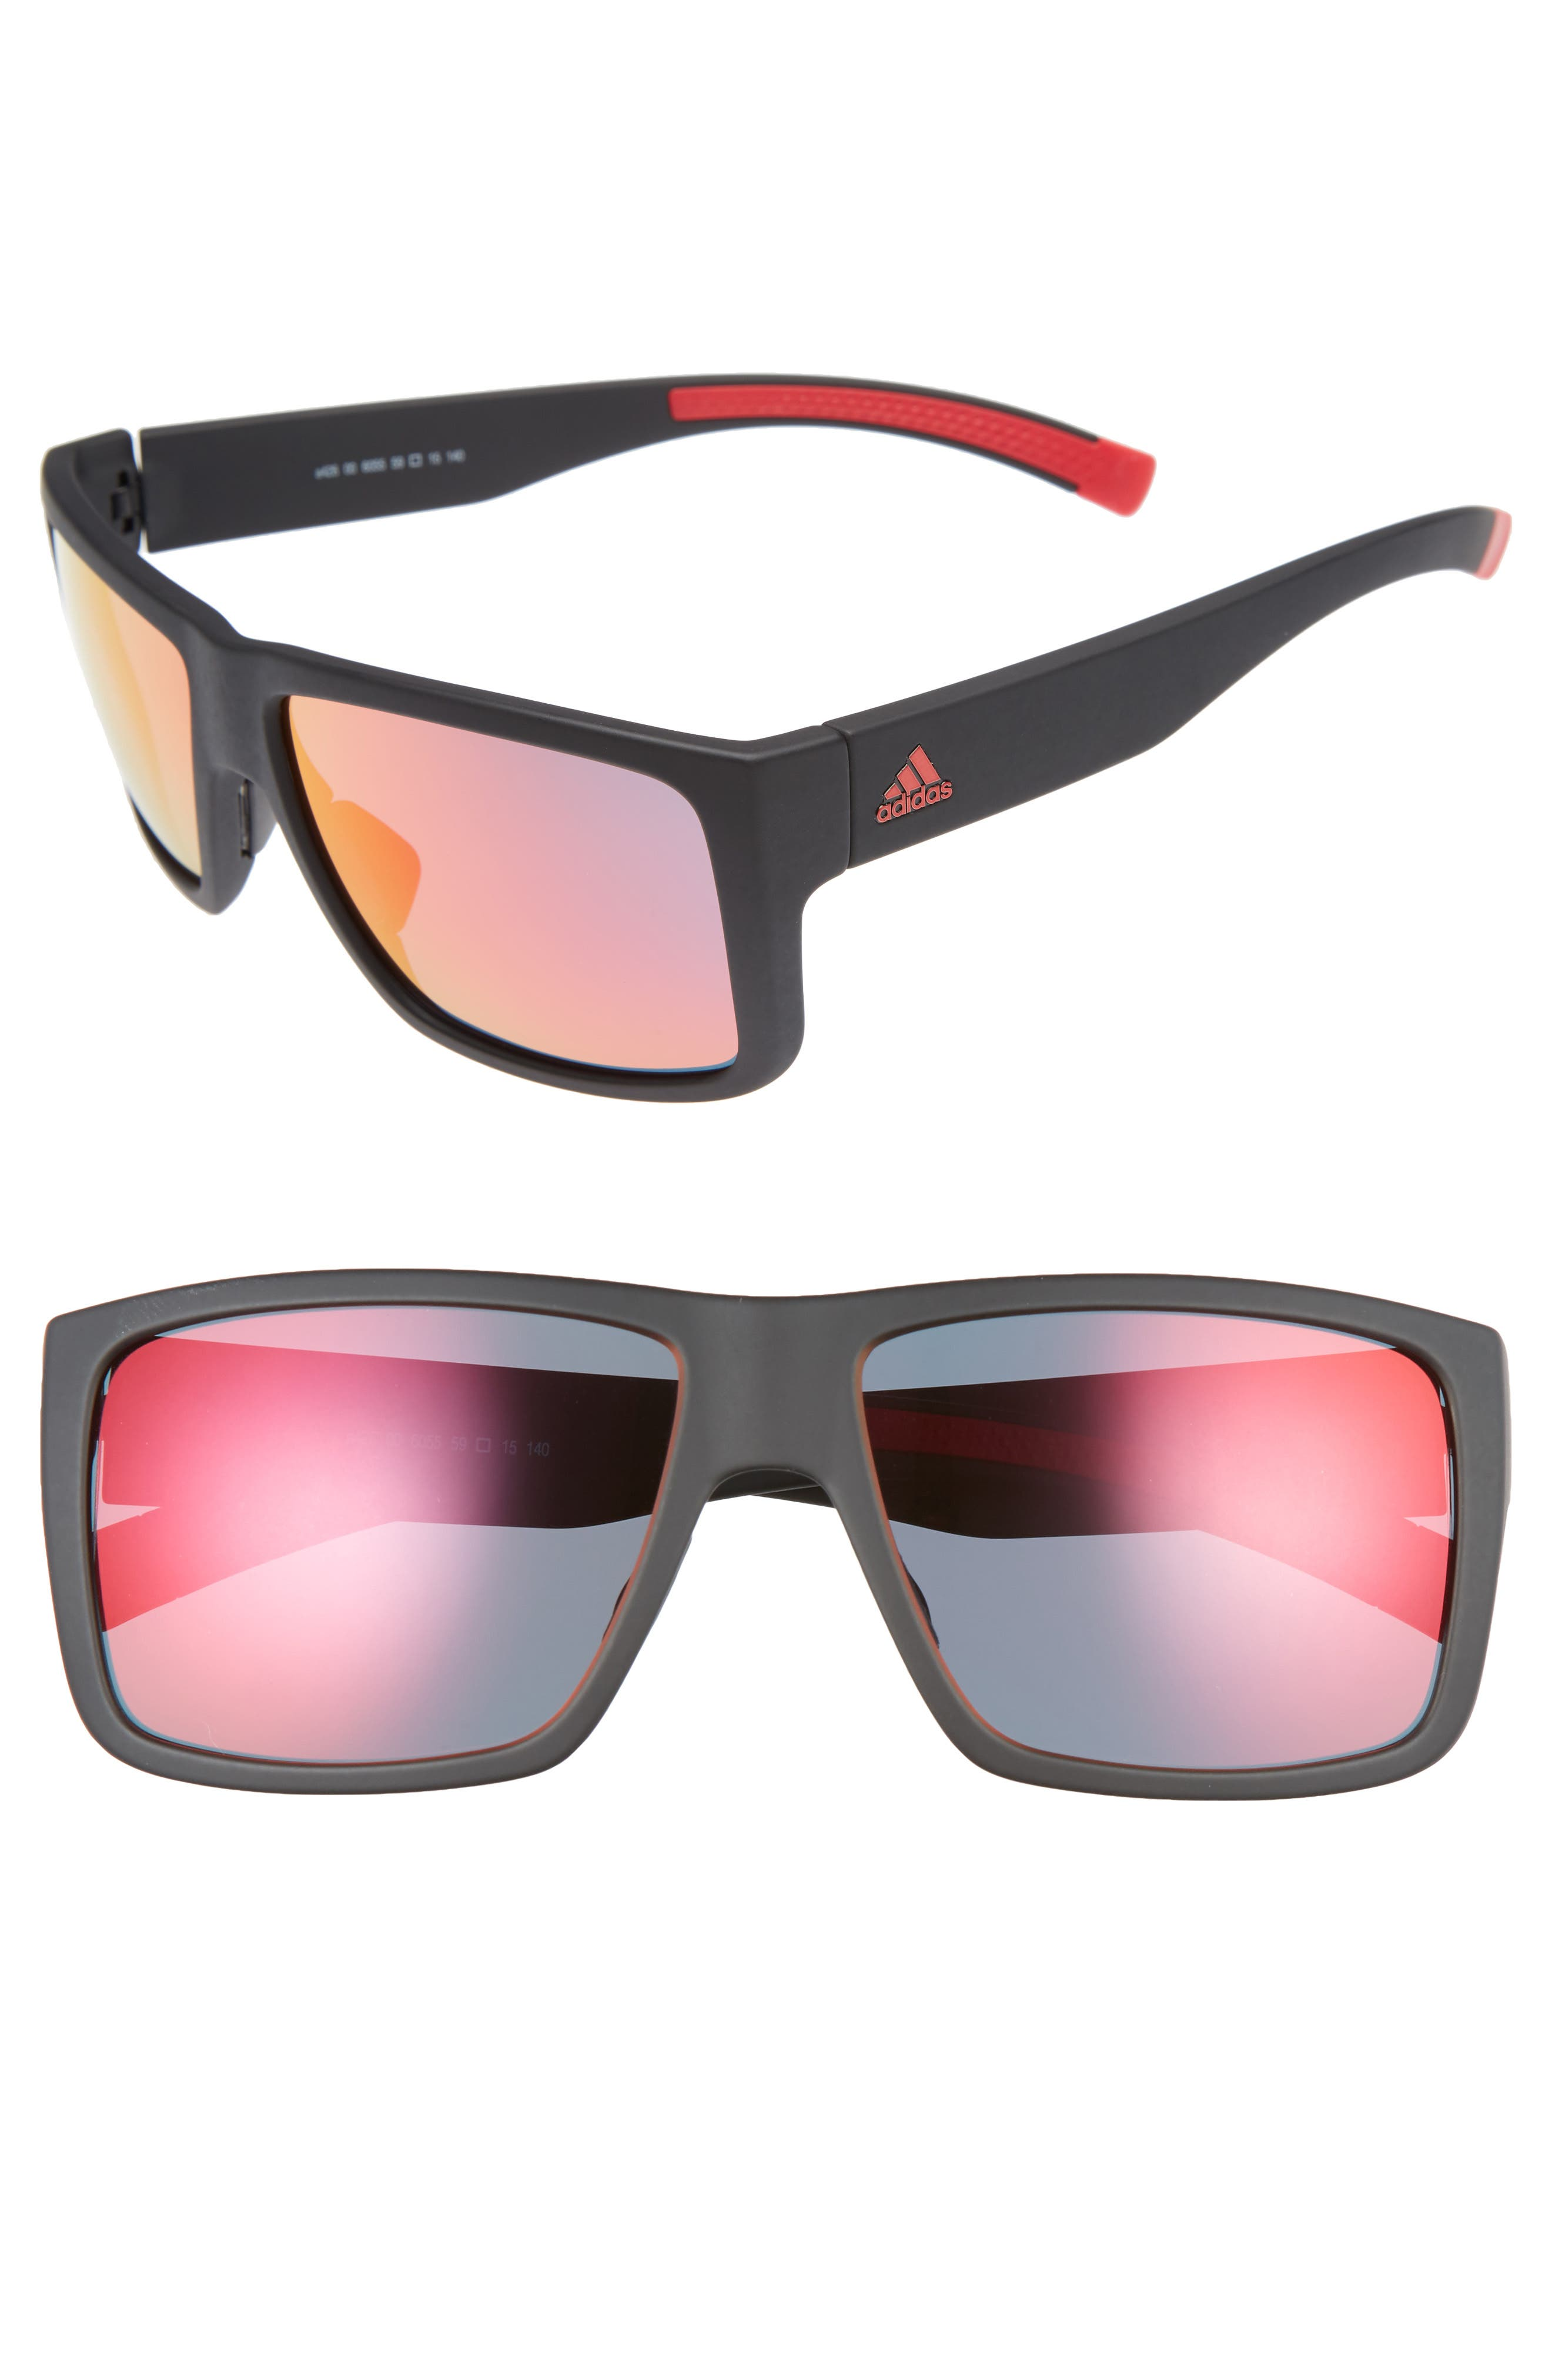 ADIDAS, Matic 59mm Sunglasses, Alternate thumbnail 2, color, BLACK MATTE/ RED MIRROR